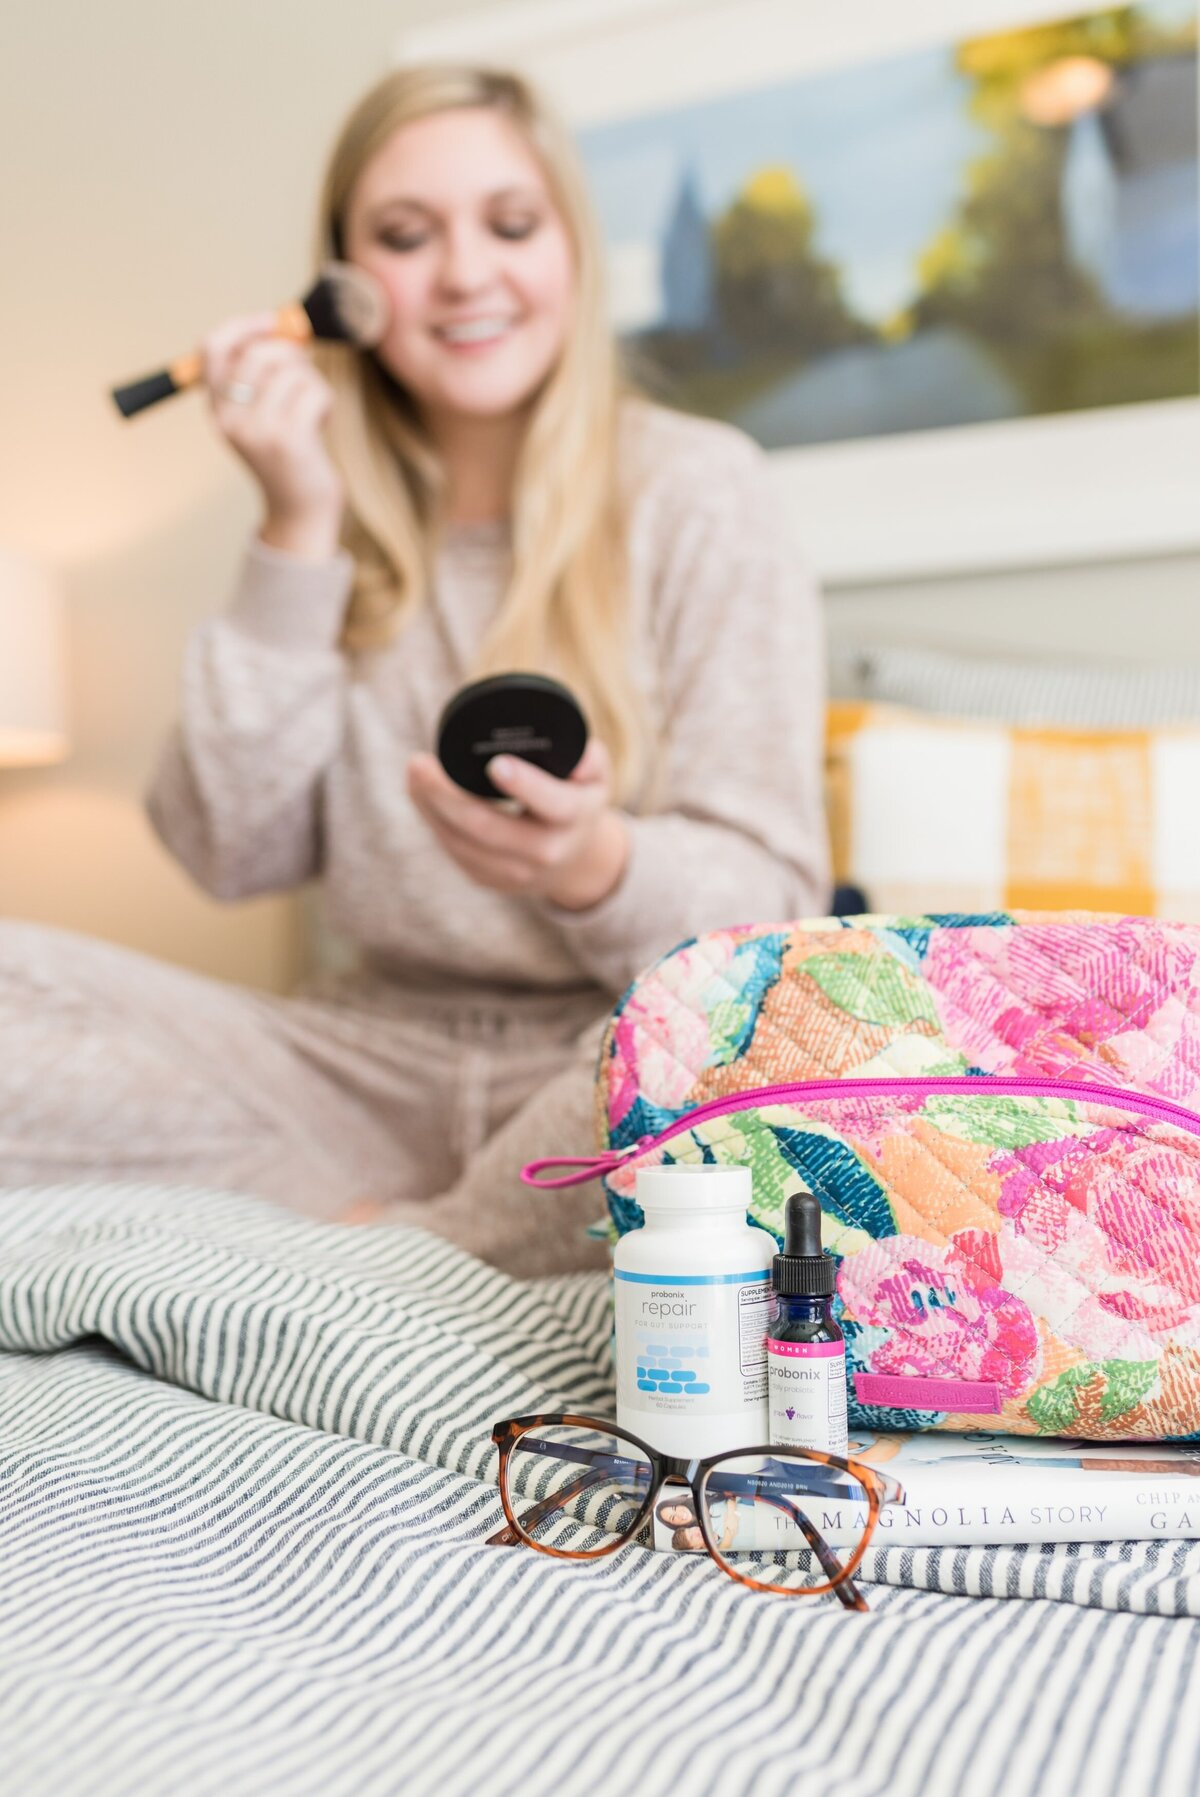 Product photo of Humarian probiotics with a make up bag and glasses and a woman blurry in the background apply makeup